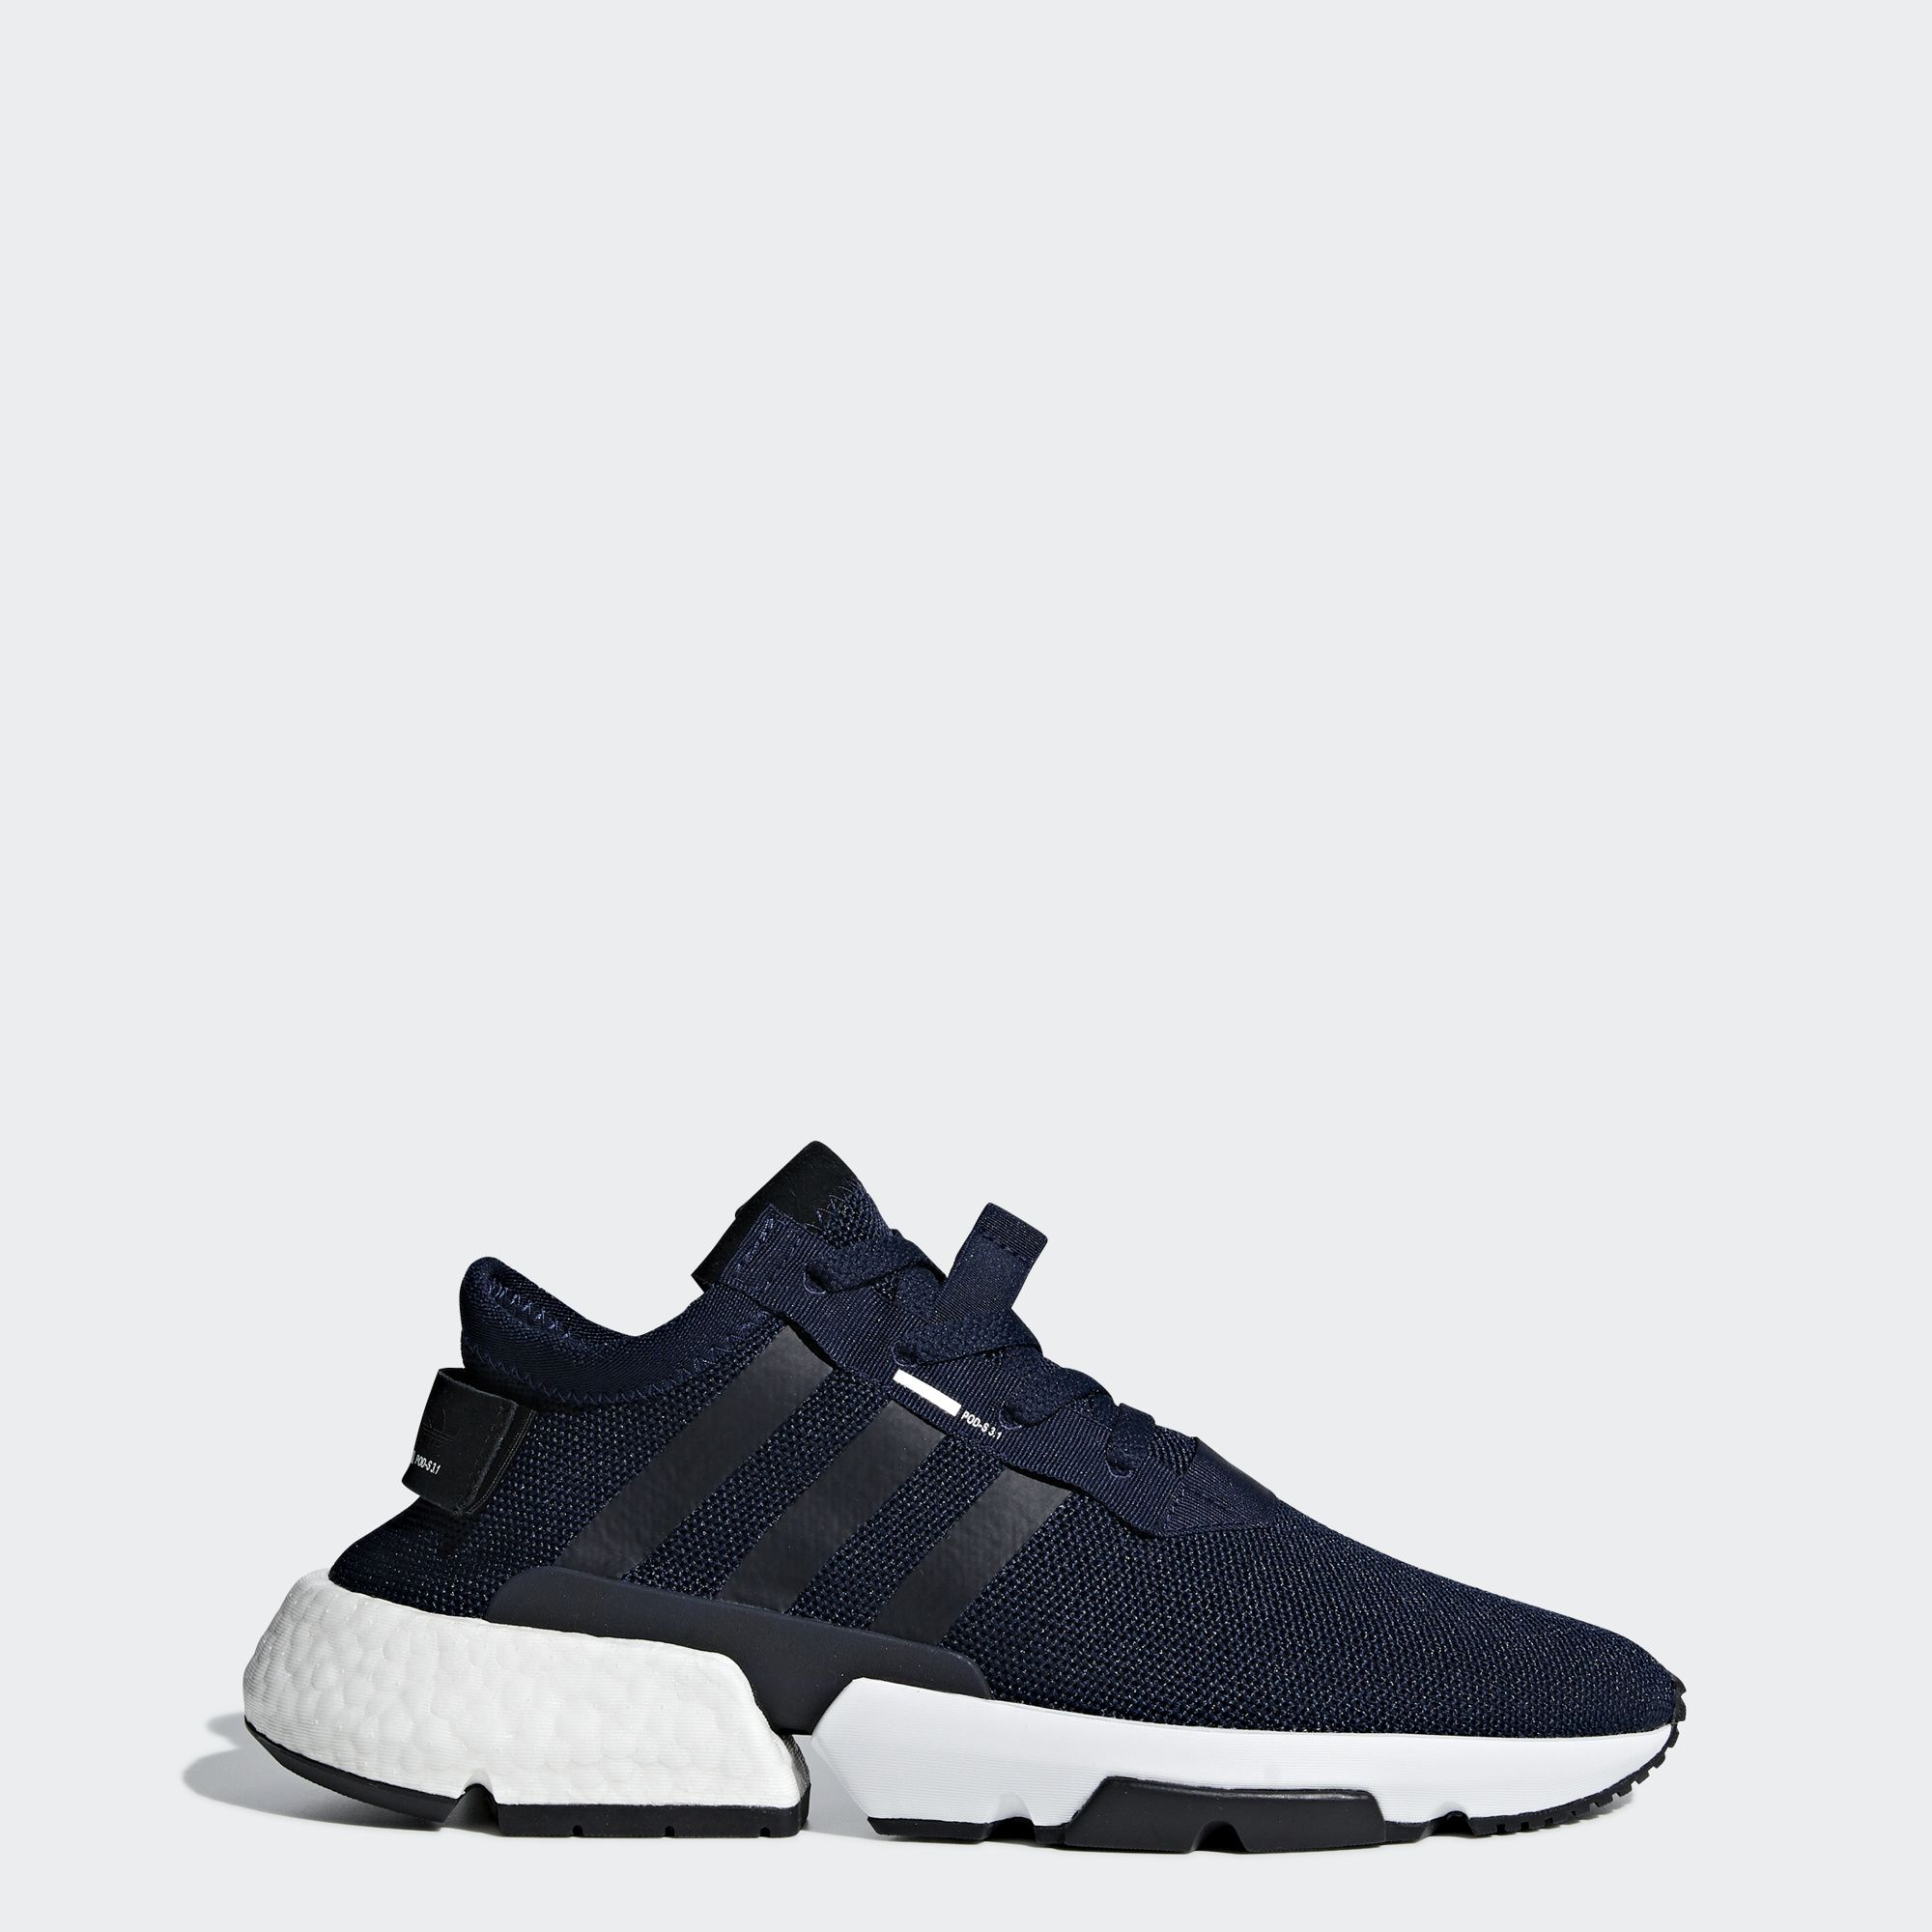 Shop for POD-S3.1 Shoes - Blue at adidas.co.uk! See all the ...